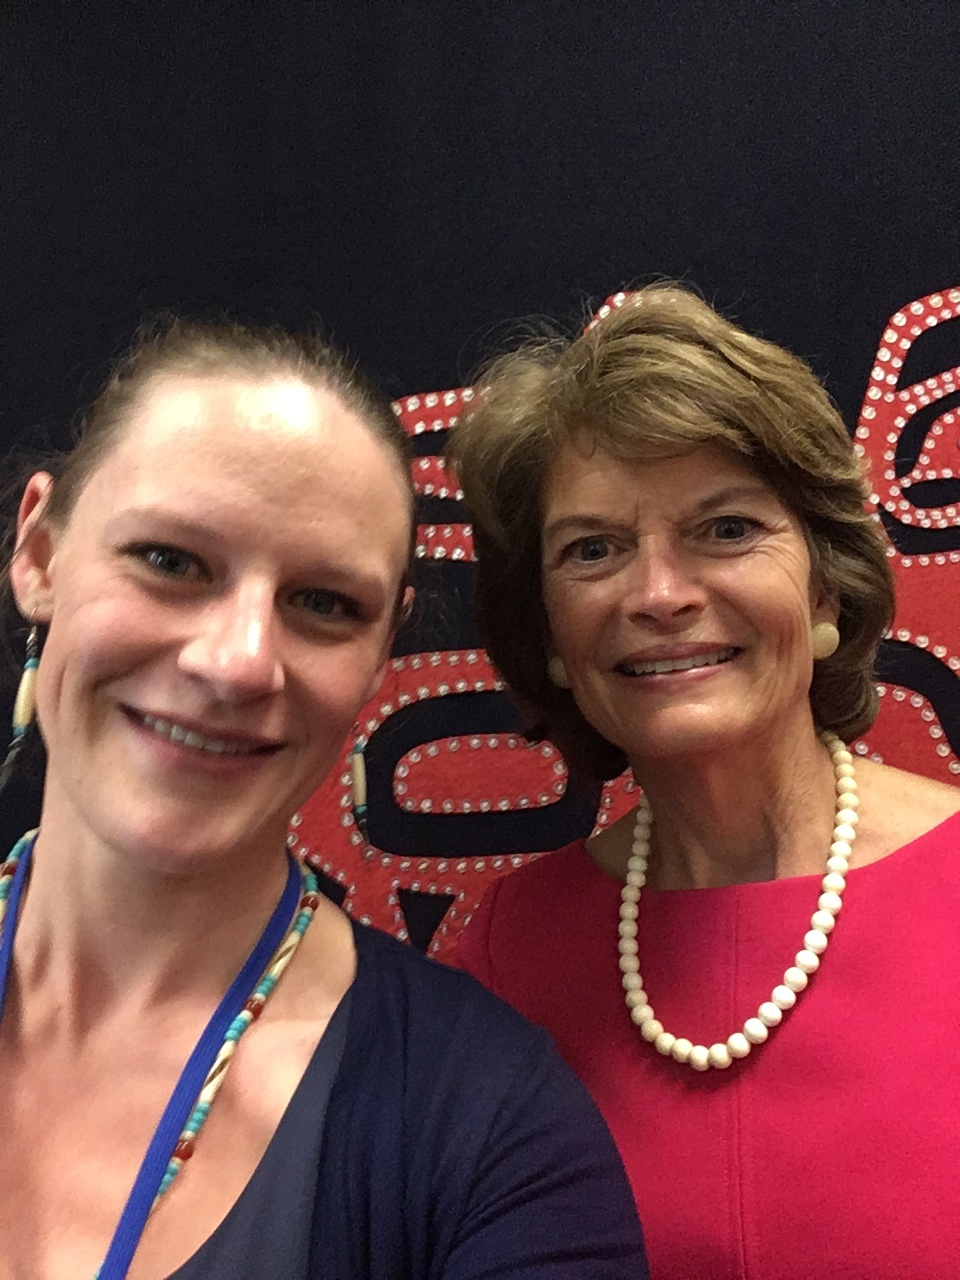 - AKPIRG Executive Director, Jill Yordy, with Senator Lisa Murkowski during Consumer Lobby Day 2018